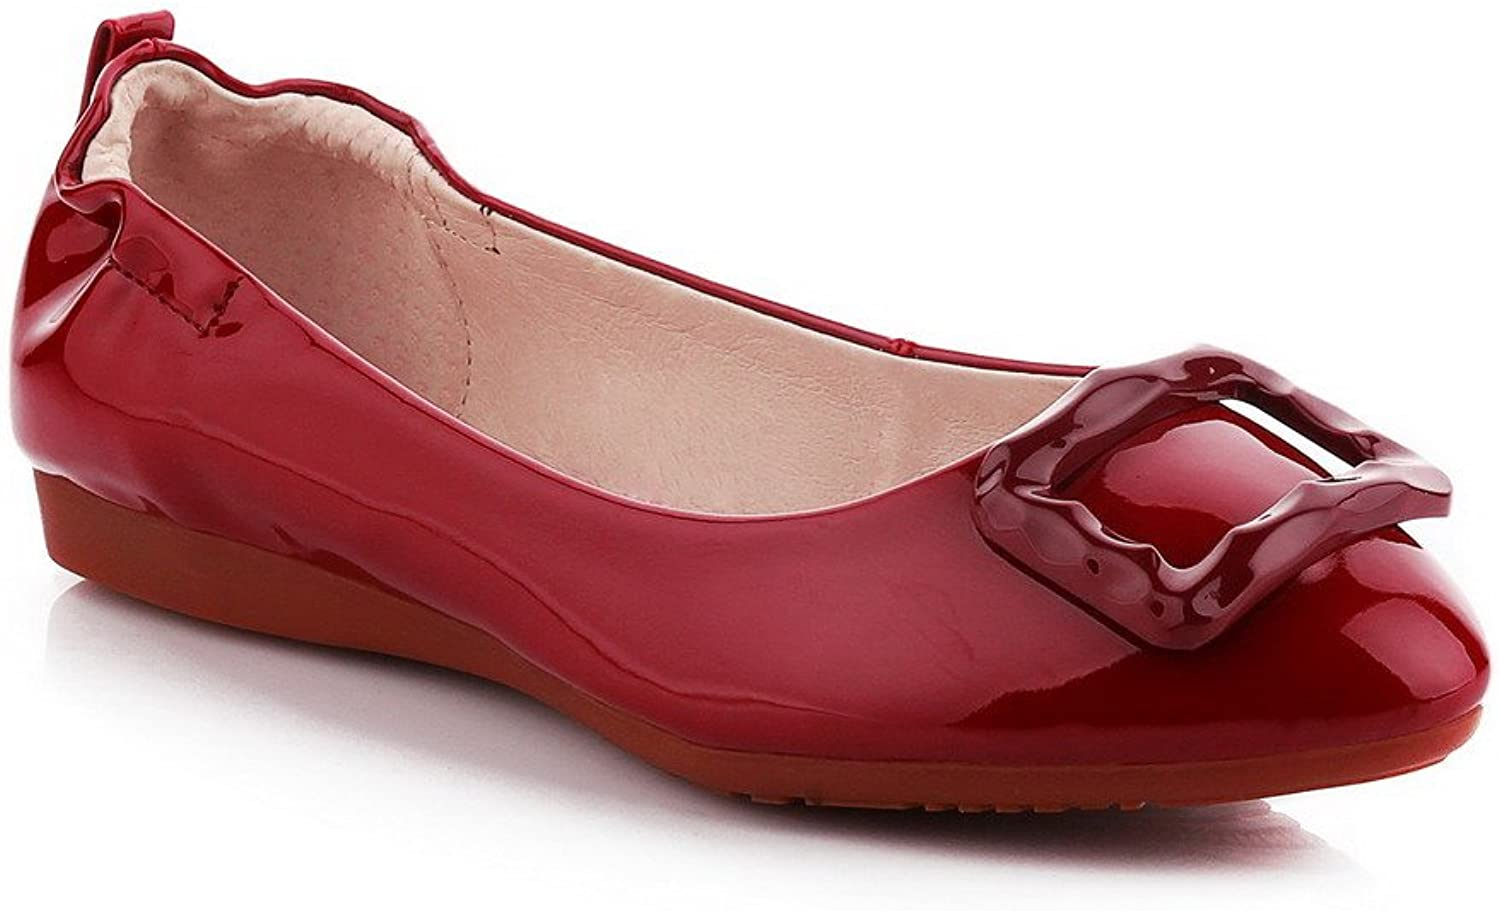 WeenFashion Women's Patent Leather Pull on Pointed Closed Toe Low-Heels Solid Pumps-shoes